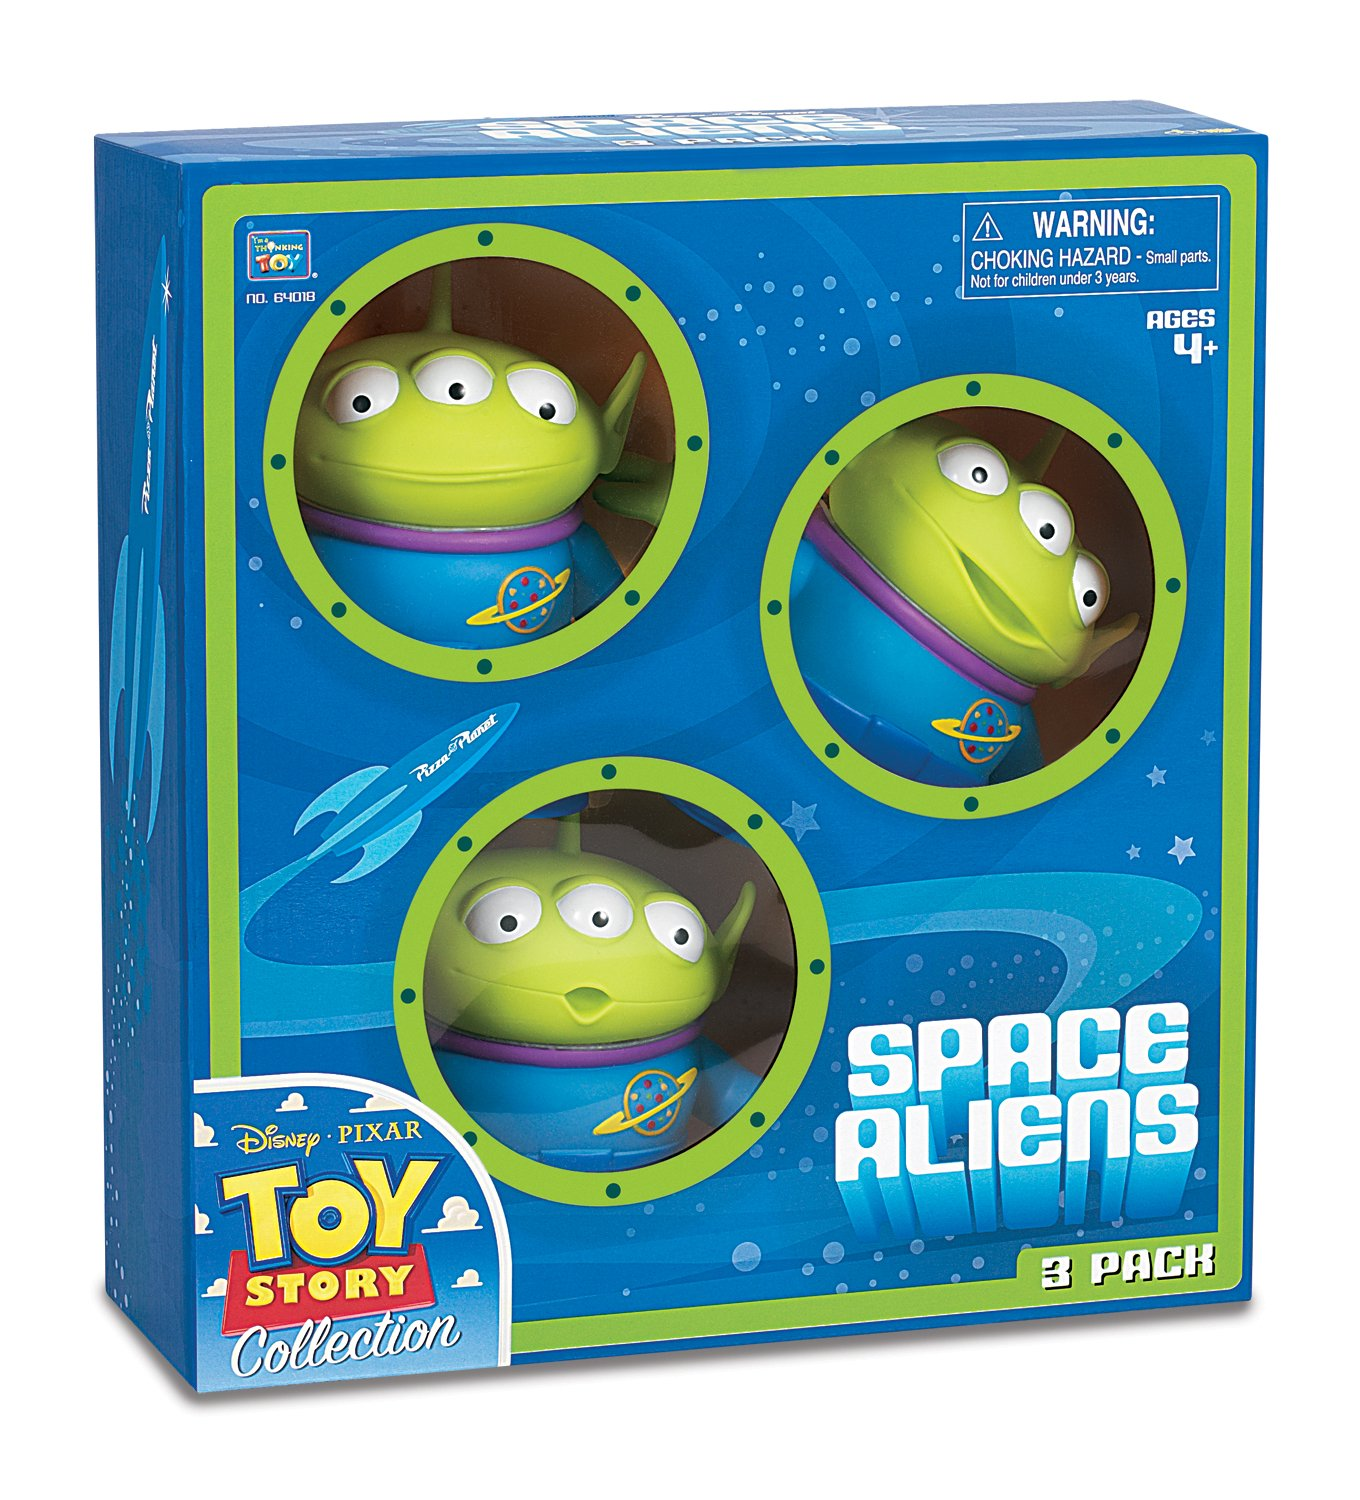 Toy Story 3 Space Aliens 3 Pack: Amazon.ca: Home & Kitchen